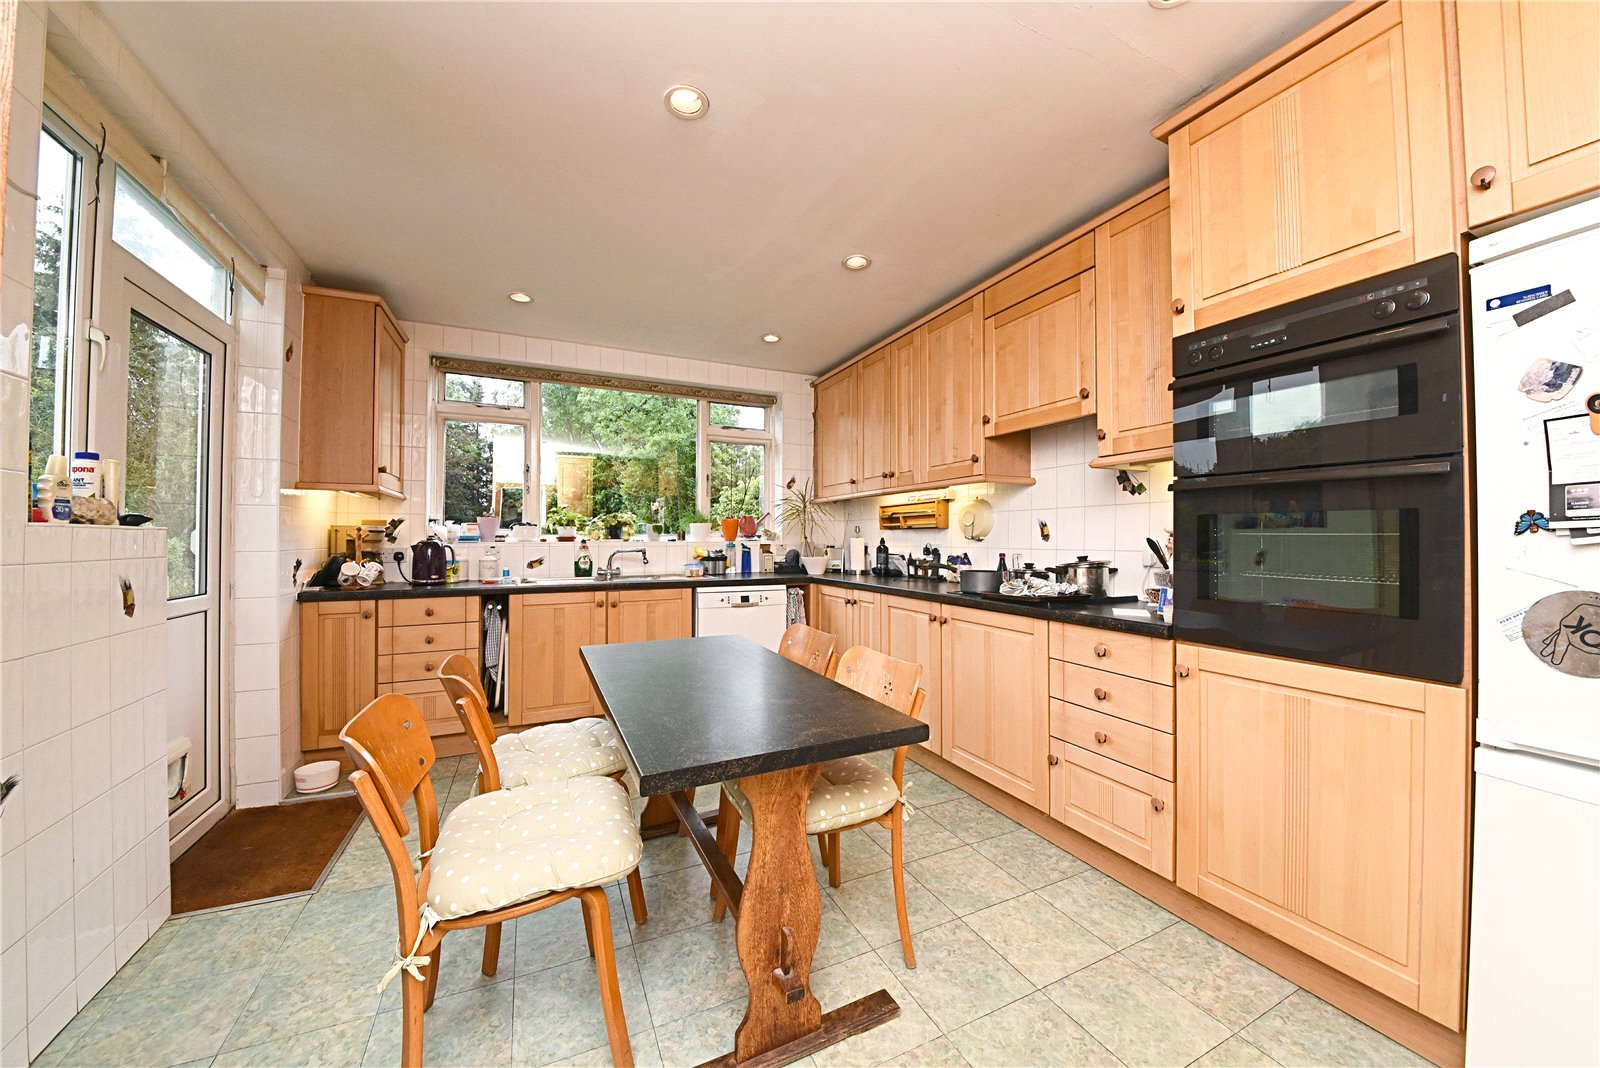 4 bed house for sale in Whetstone, N20 9ED, N20